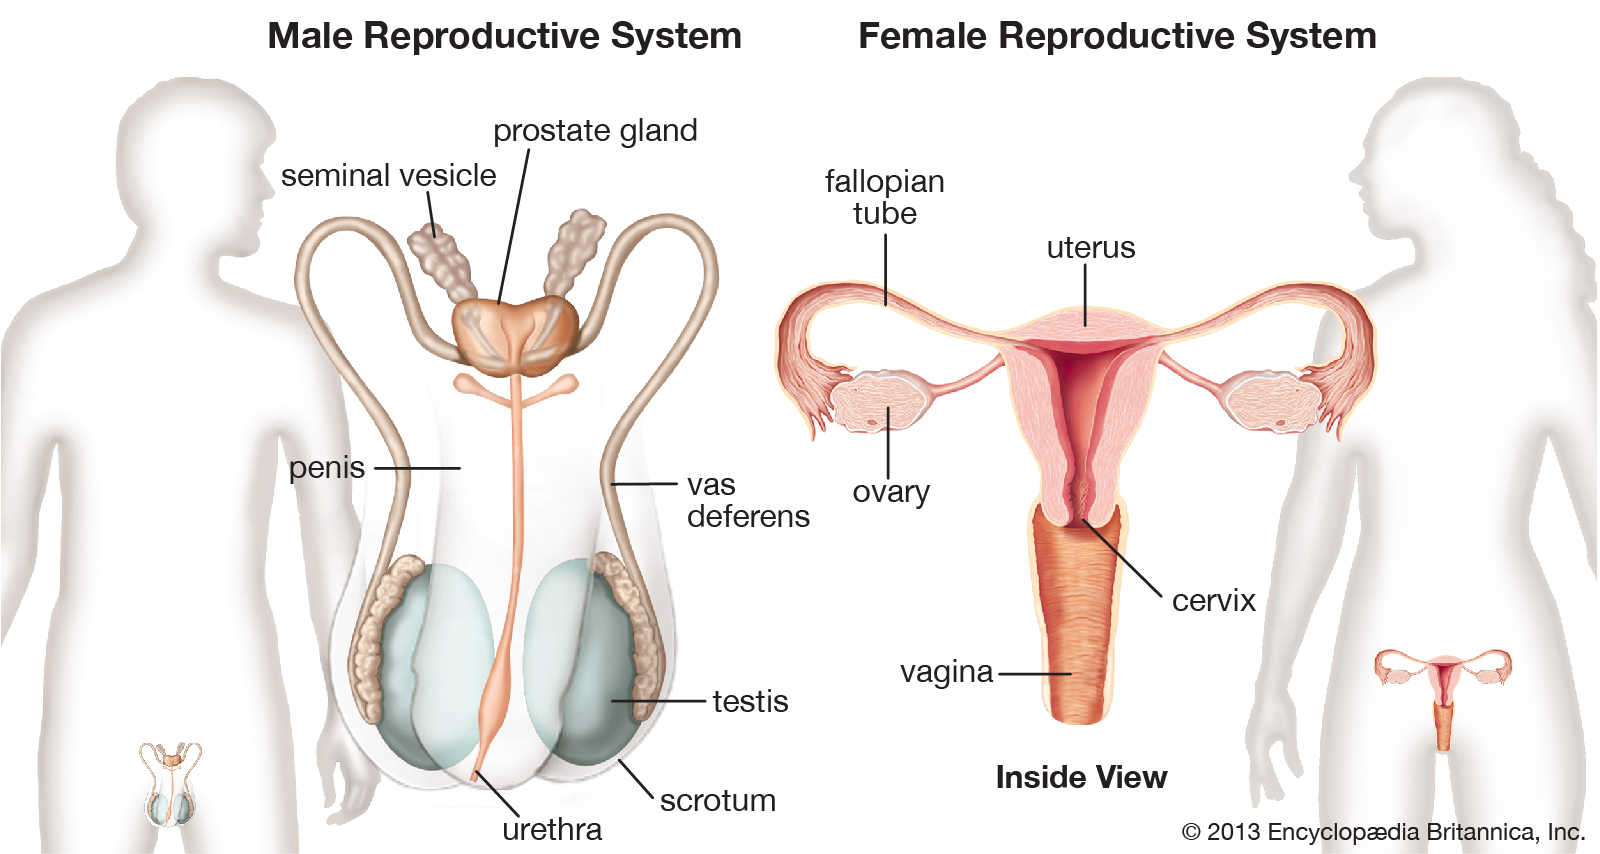 females-puberty-organs-hormones-males-reproduction-egg